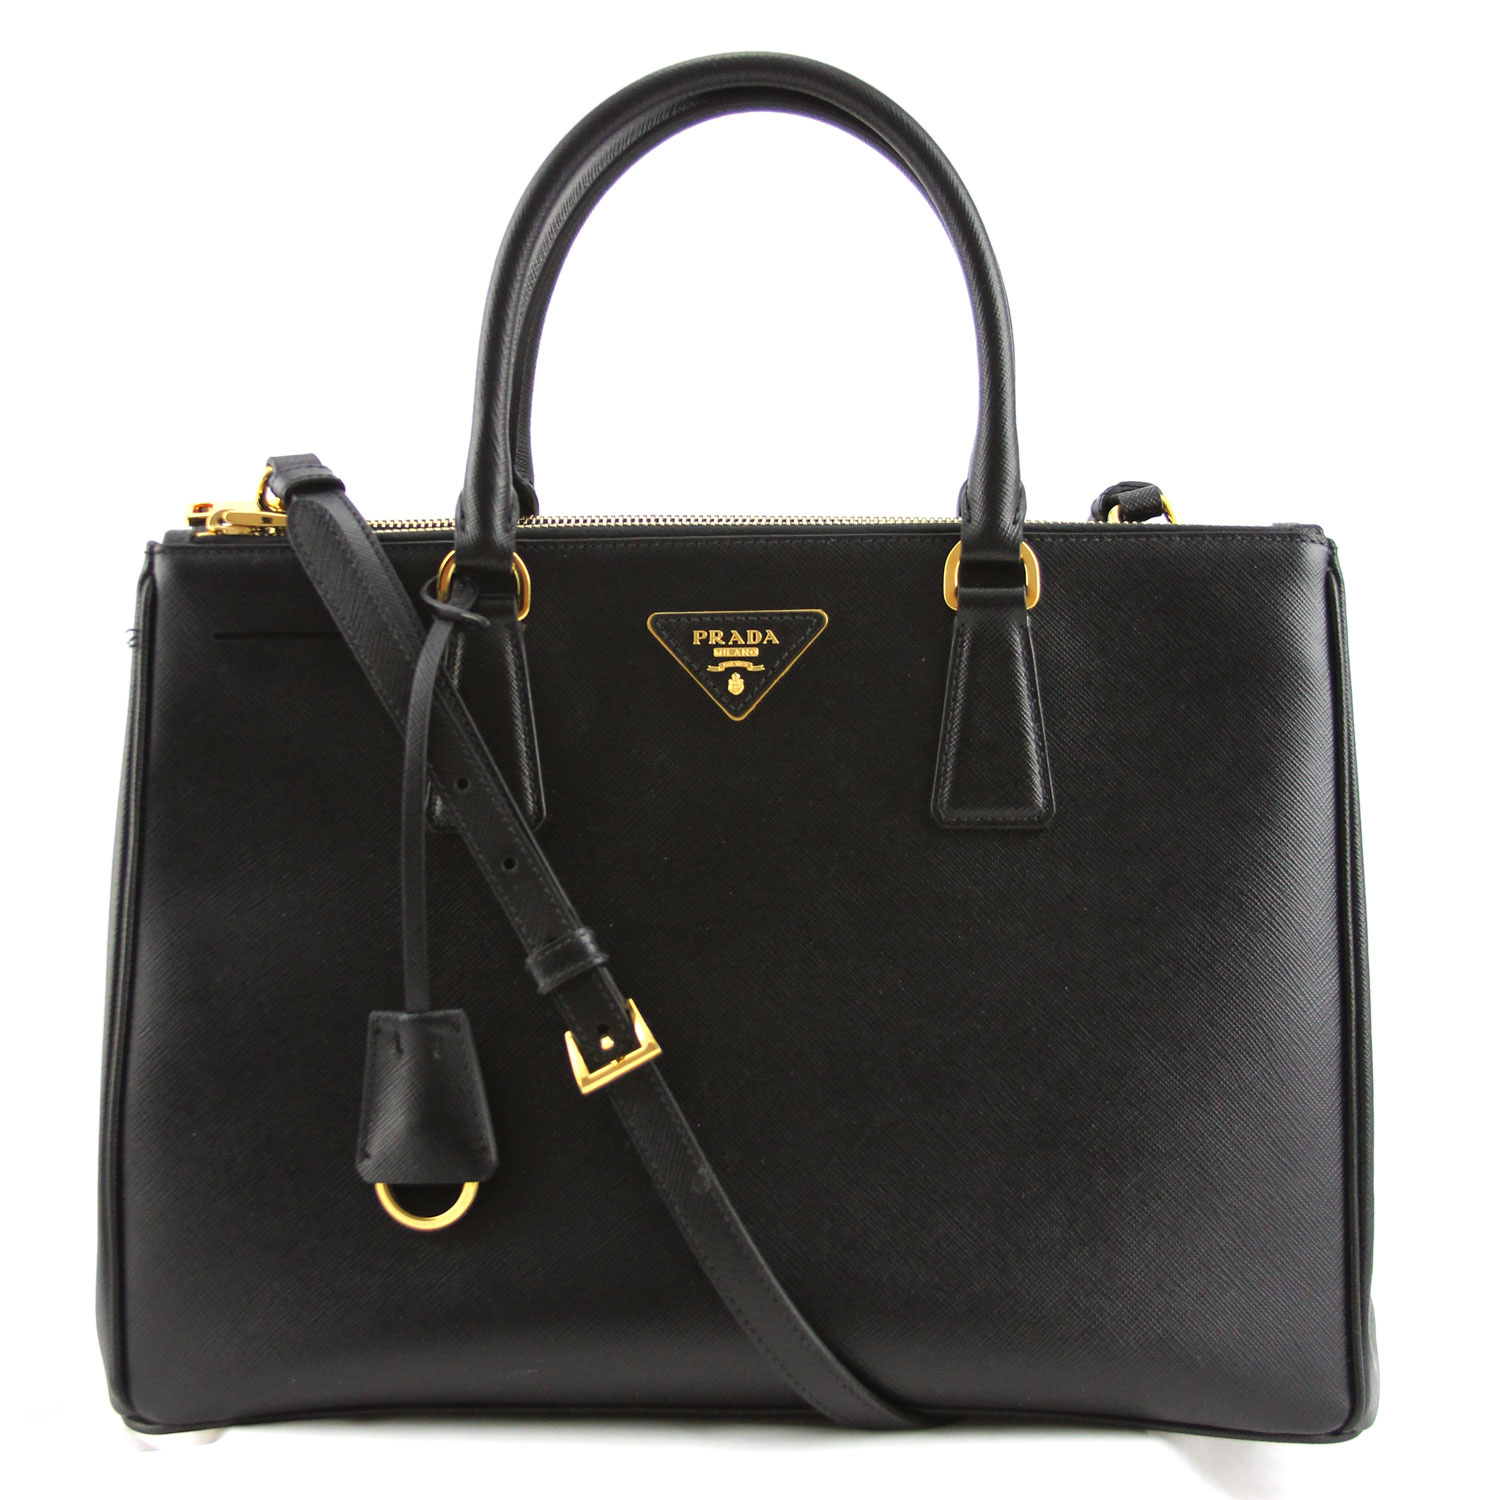 Sell designer handbags in los angeles upscale handbag buyer for Designer accessoires